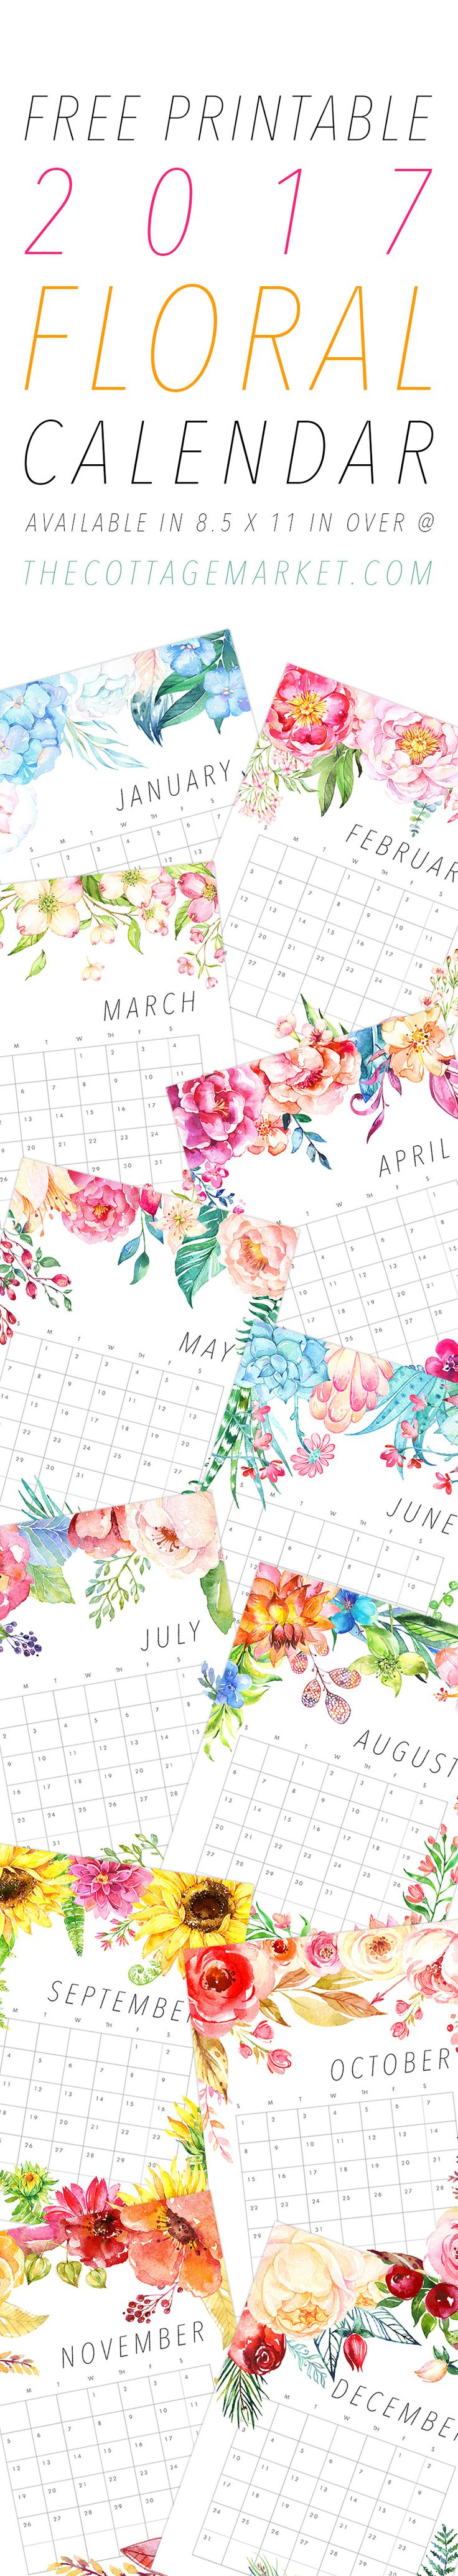 A Beautiful Free Printable 2017 Floral Calendar that you will enjoy all year round! The Cottage Market